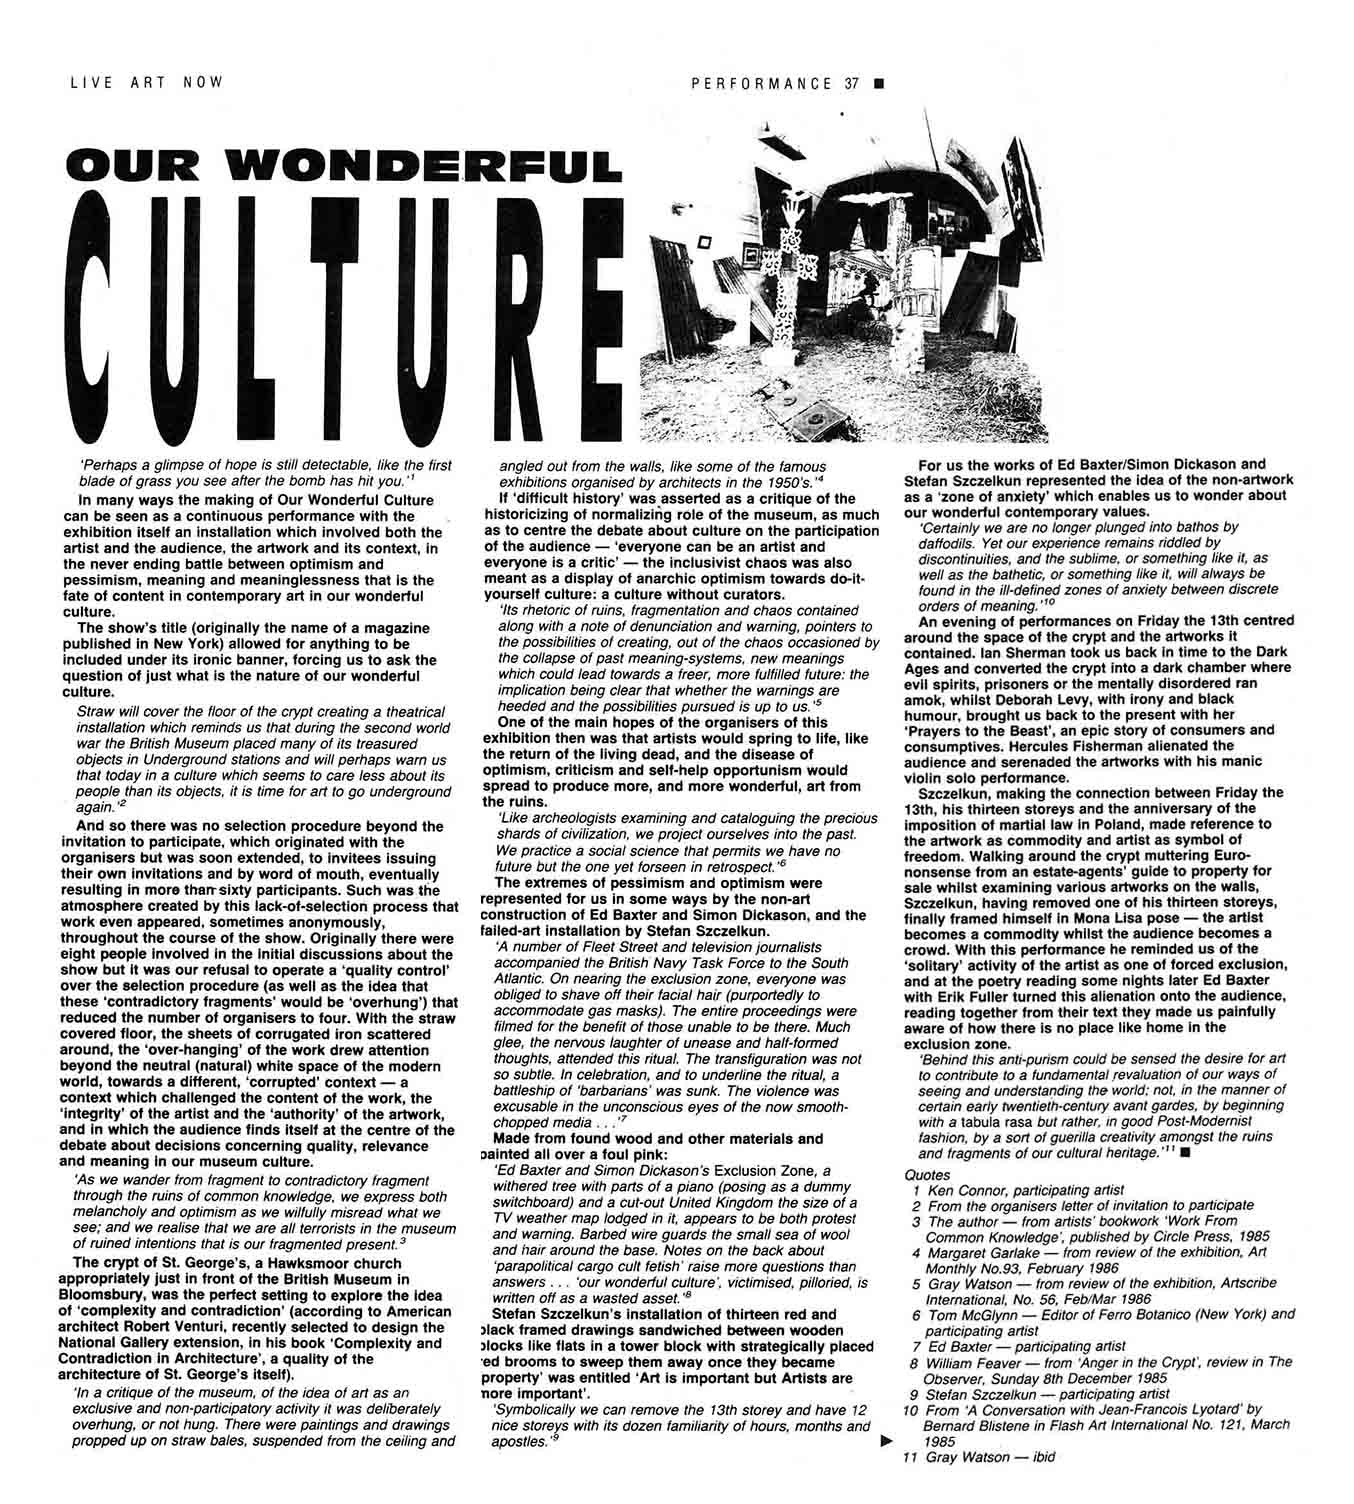 Our Wonderful Culture: Art in Ruins. Documentation: Performance Magazine